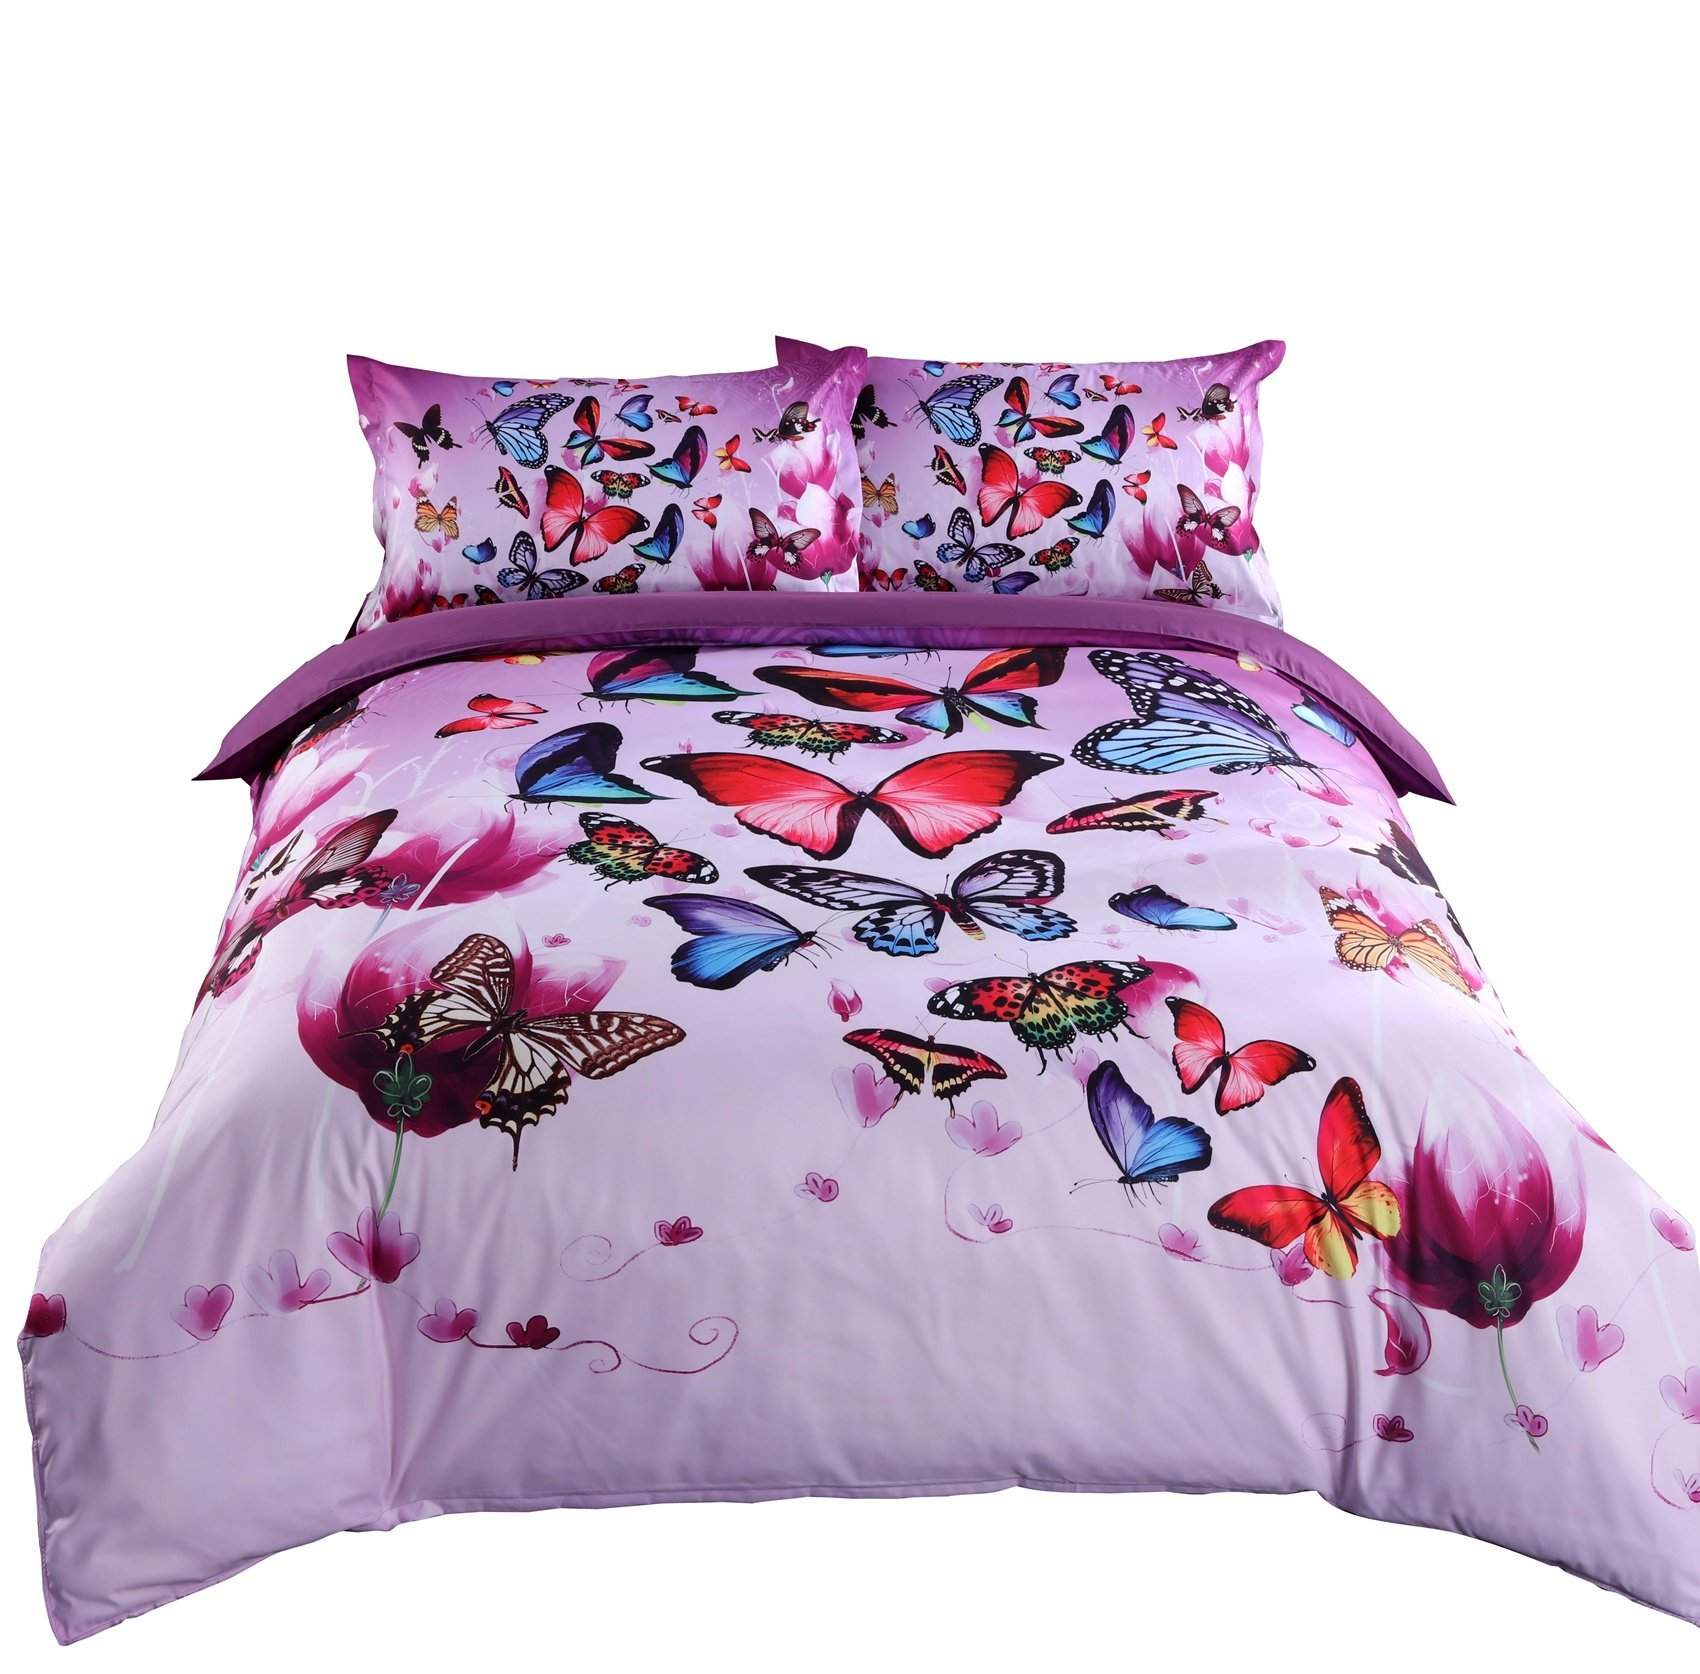 Alicemall 3D Purple Bedding Beautiful Butterflies and Purple Flower Bedding Sheets set, 4 Pieces Soft and Breathable Duvet Cover Set, Twin Size Girls Bedding (Twin, Purple)